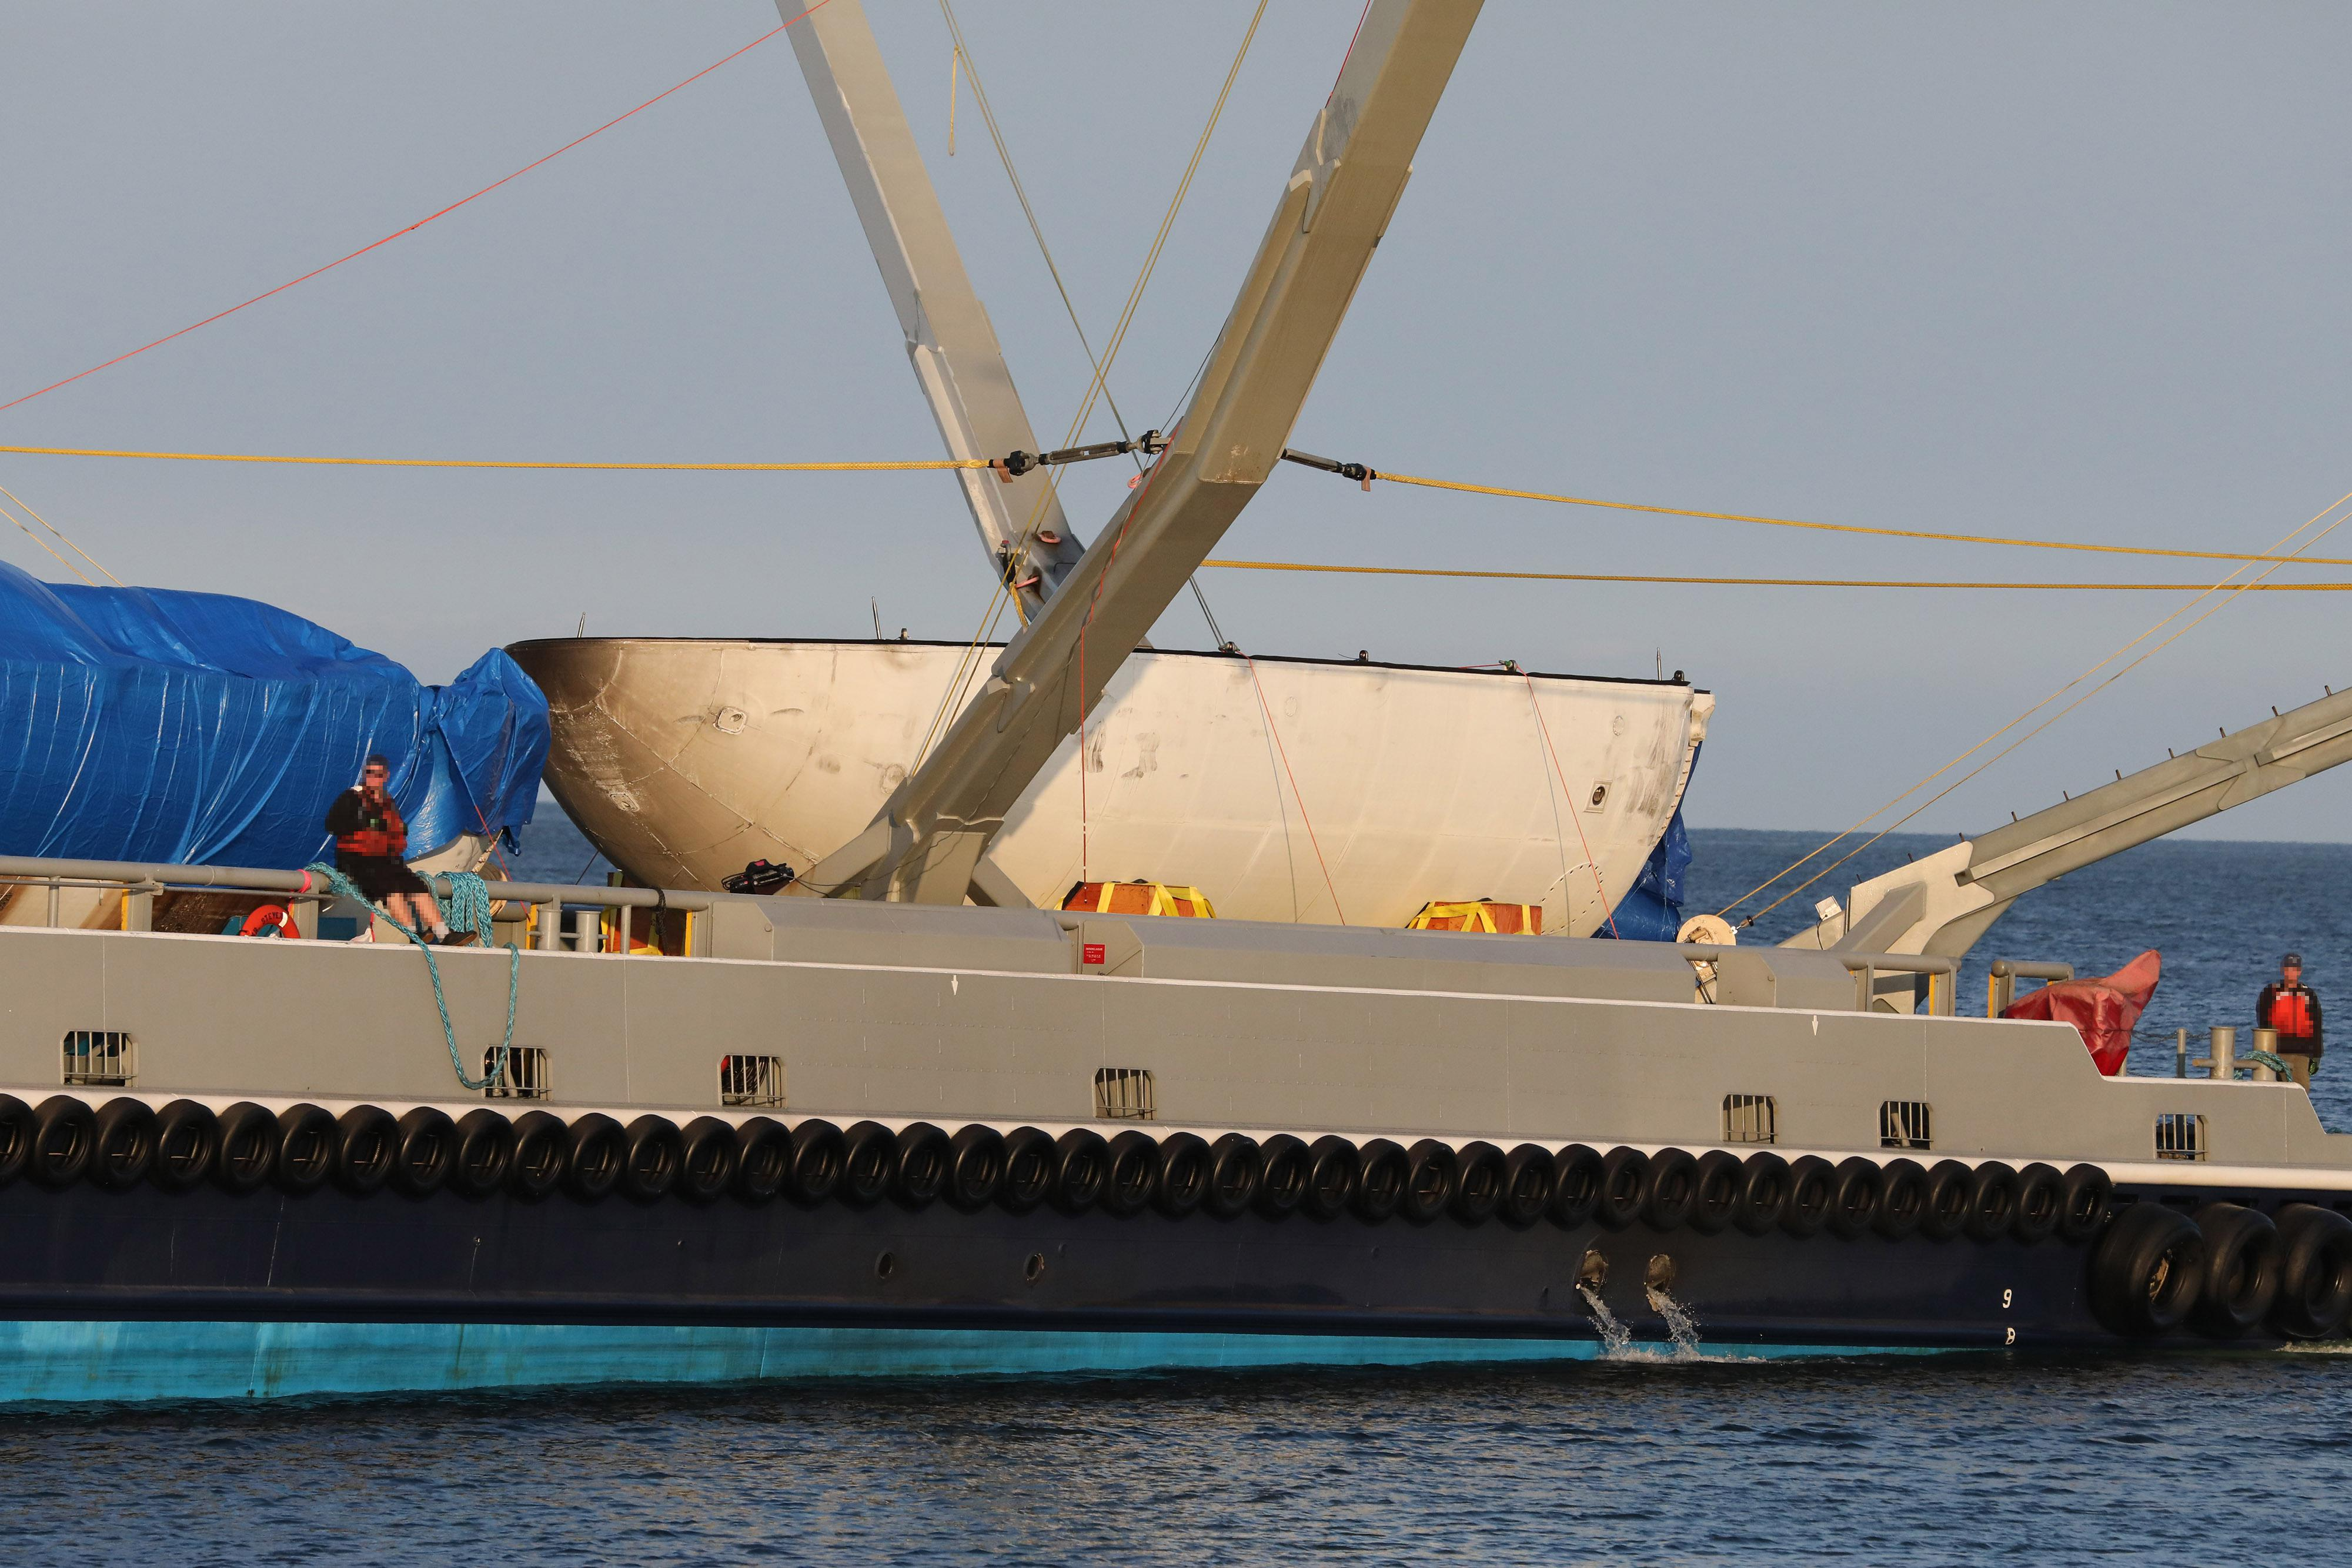 Spacex S Mr Steven Just Misses Catch Returns With Intact